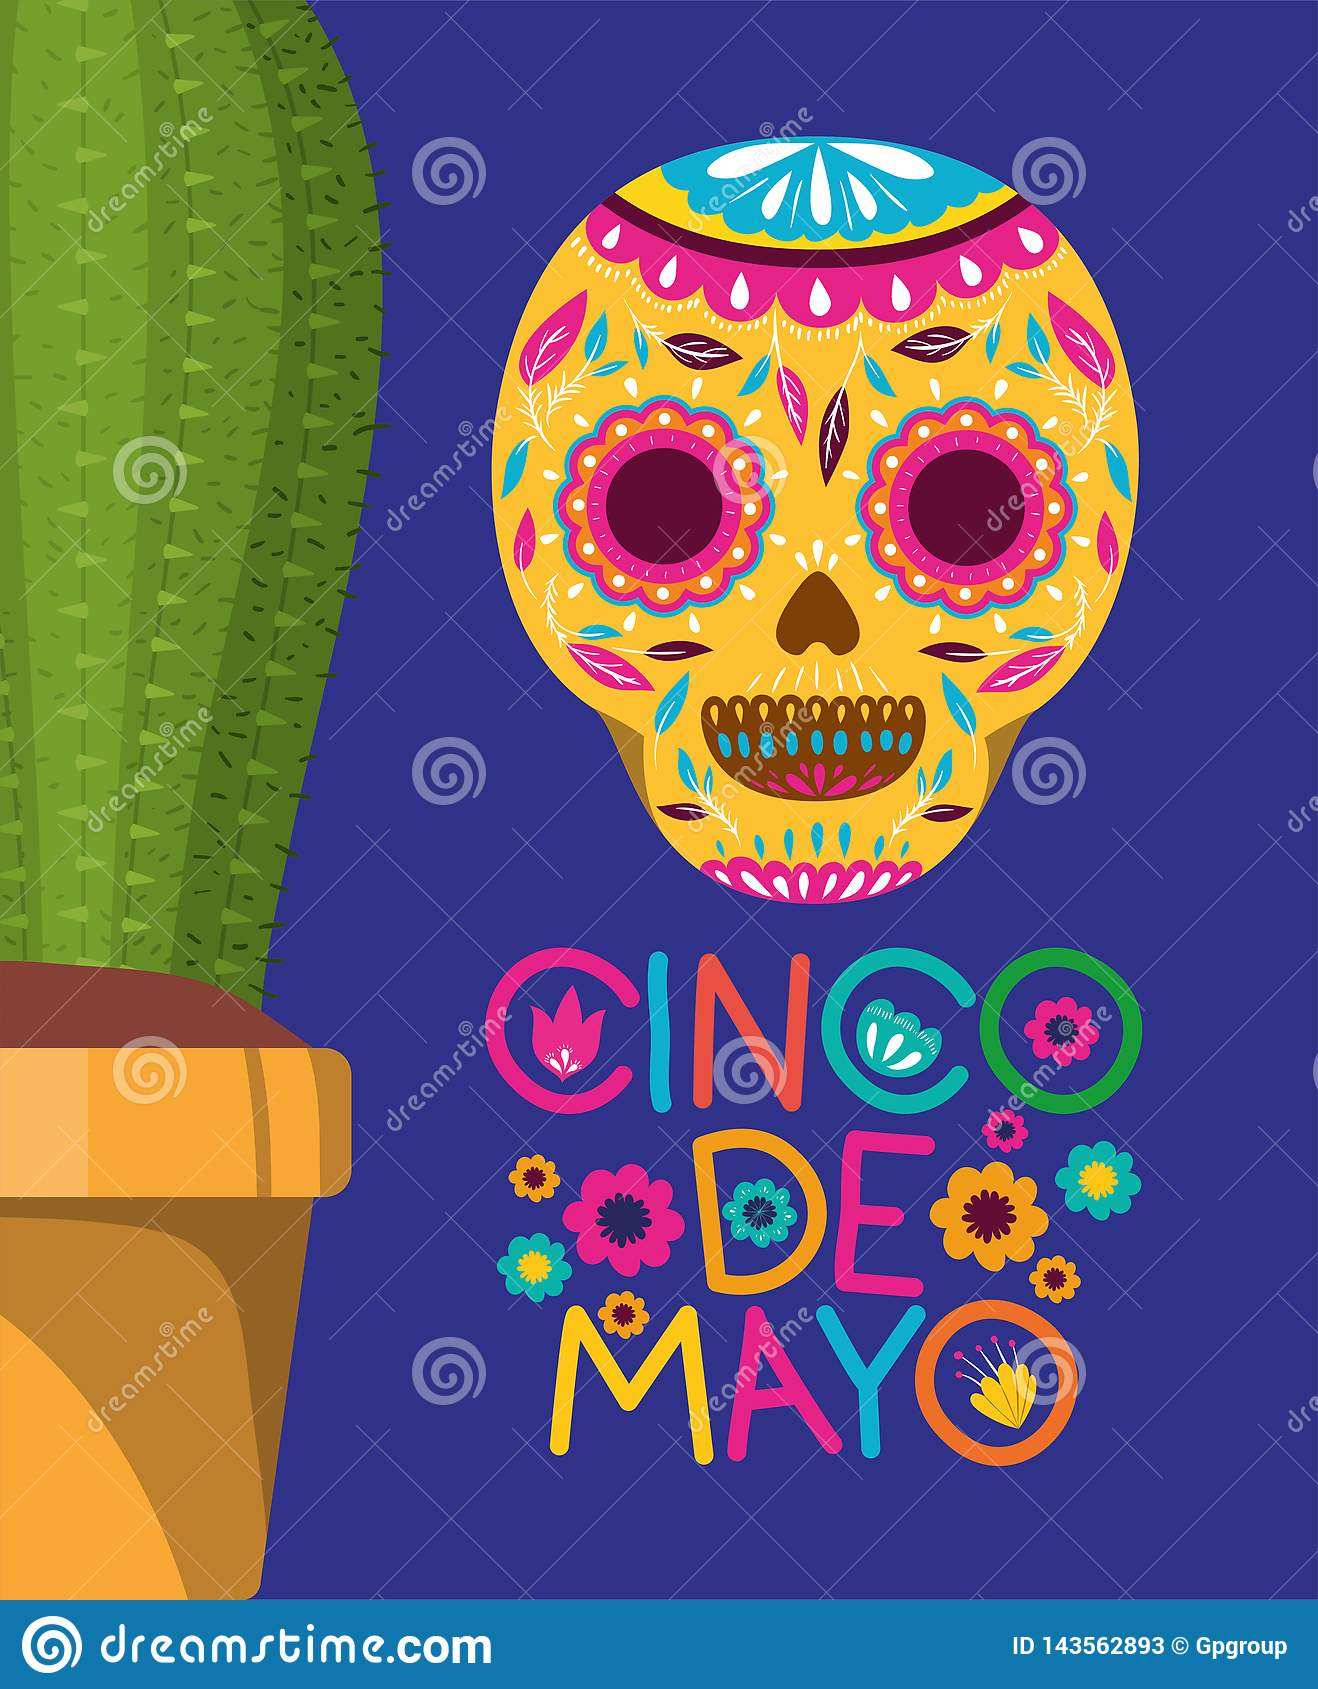 Cinco de mayo card with death mask and cactus